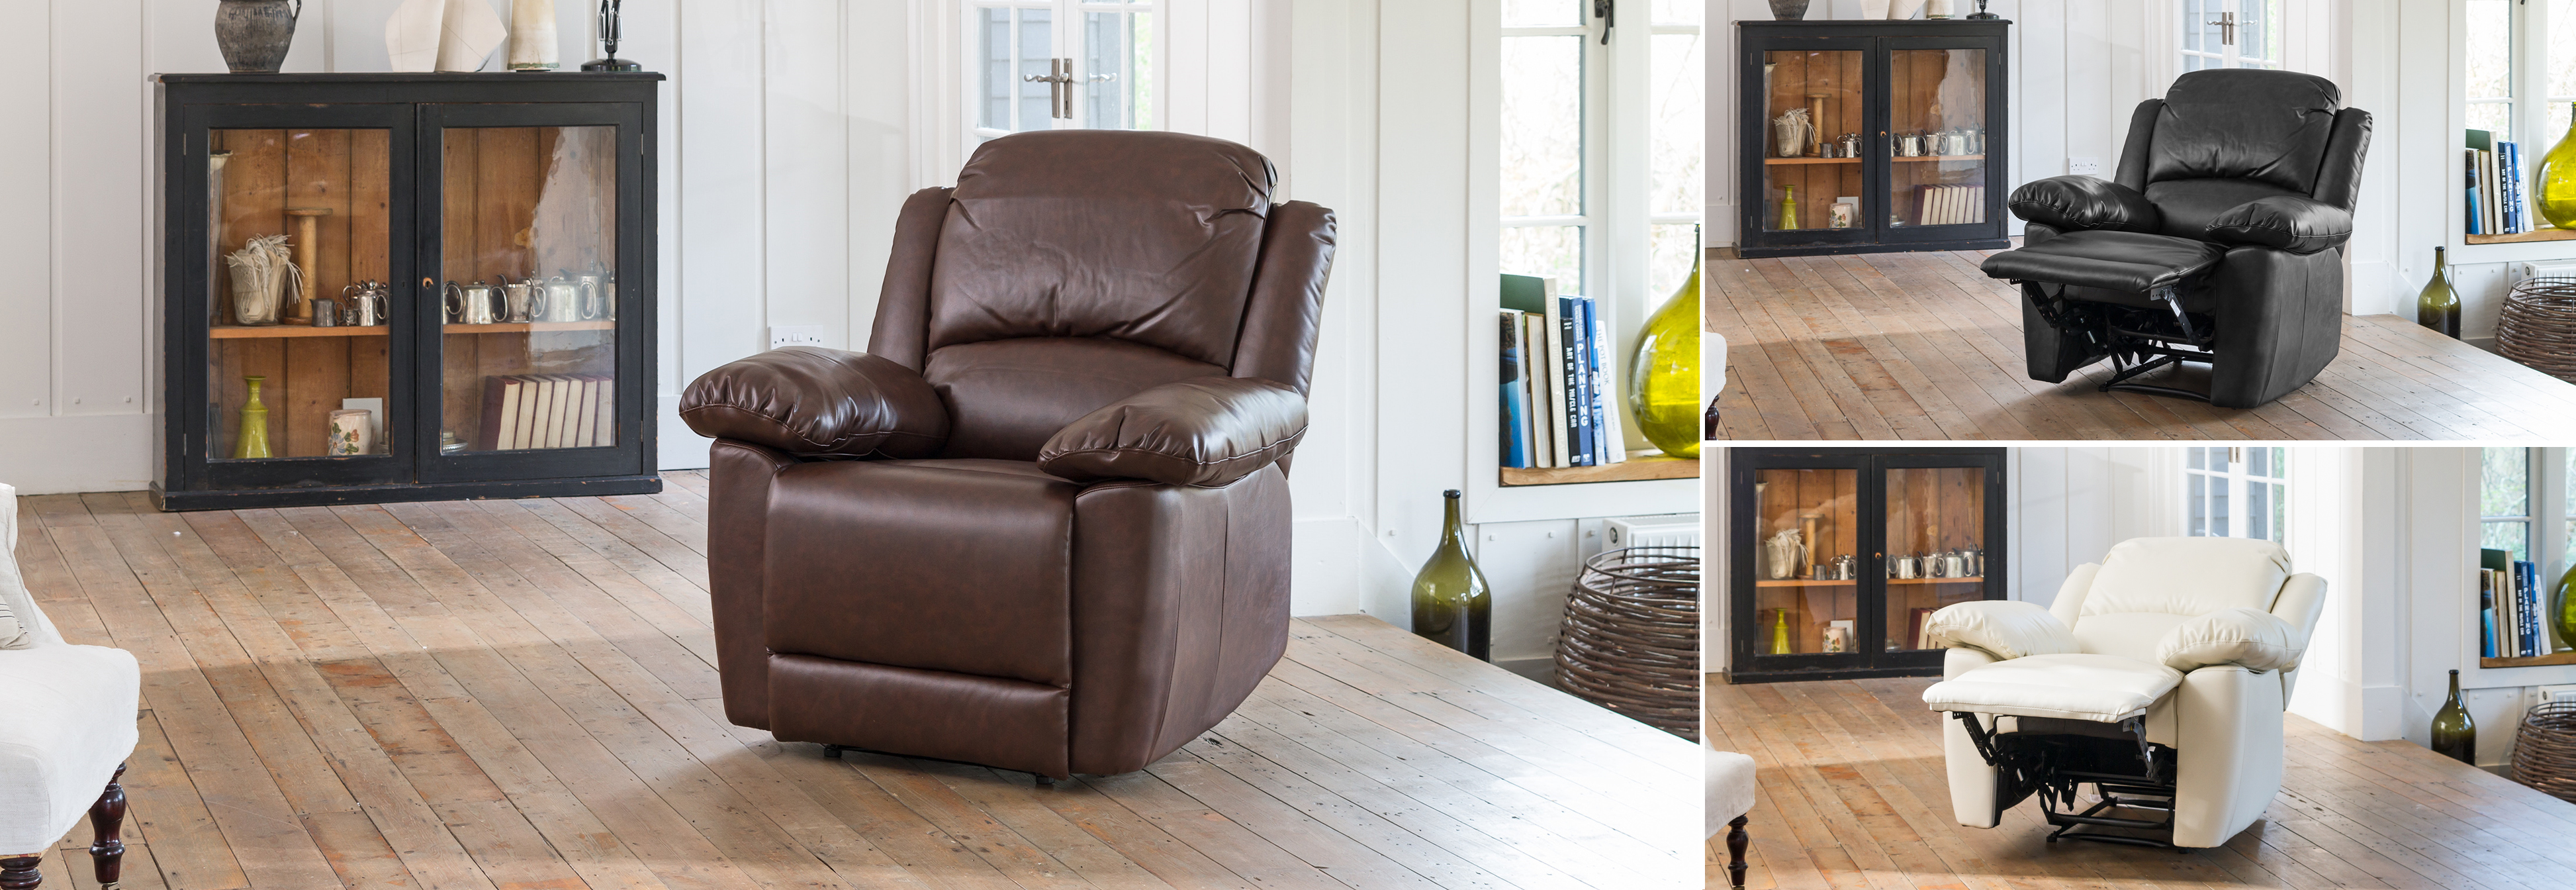 Wilton Reclining Chair brown